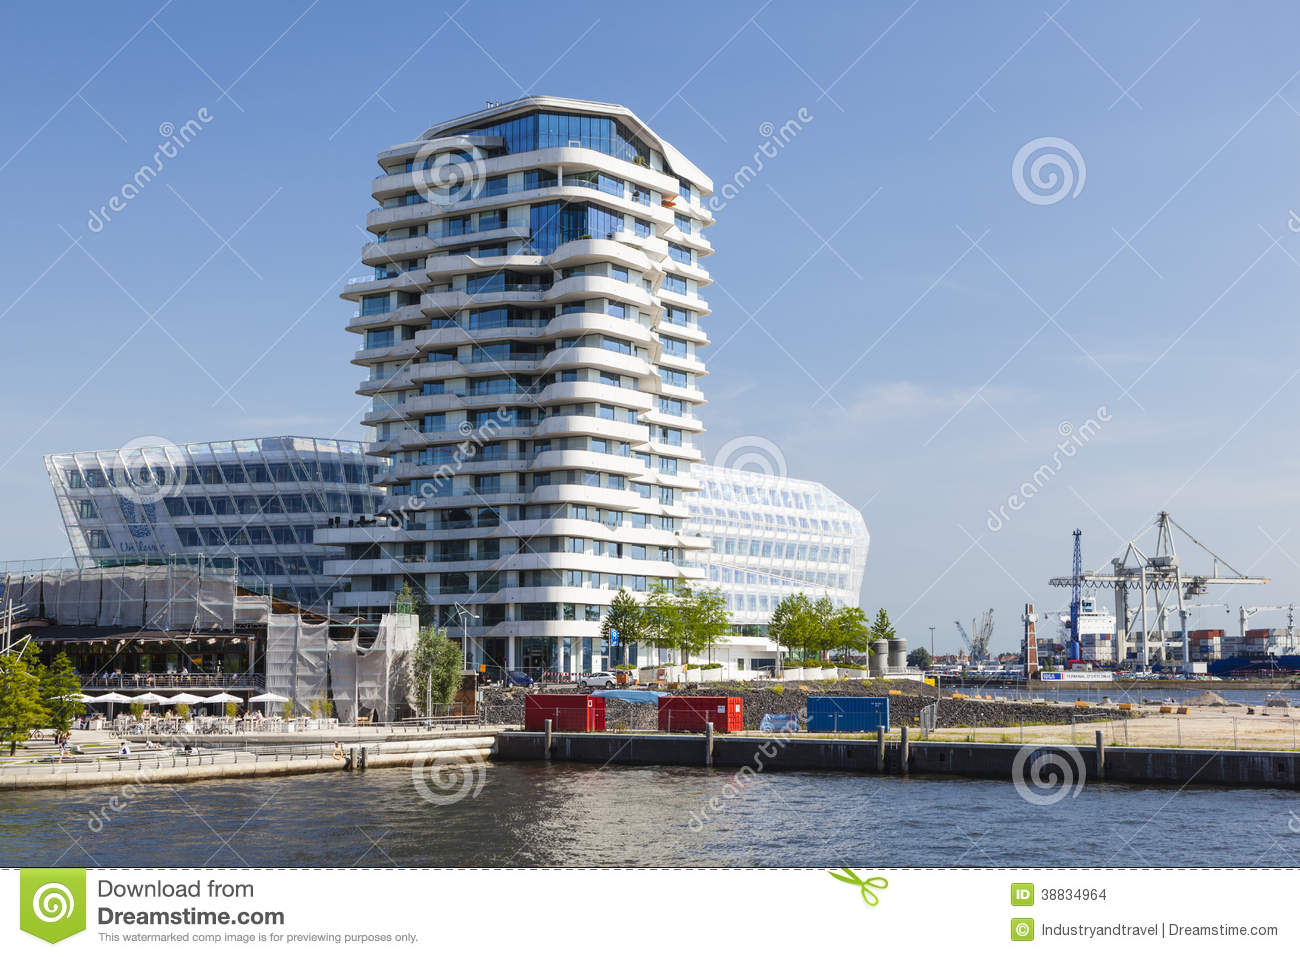 Marco Polo Tower In Hamburg, Deutschland, Redaktionell ...